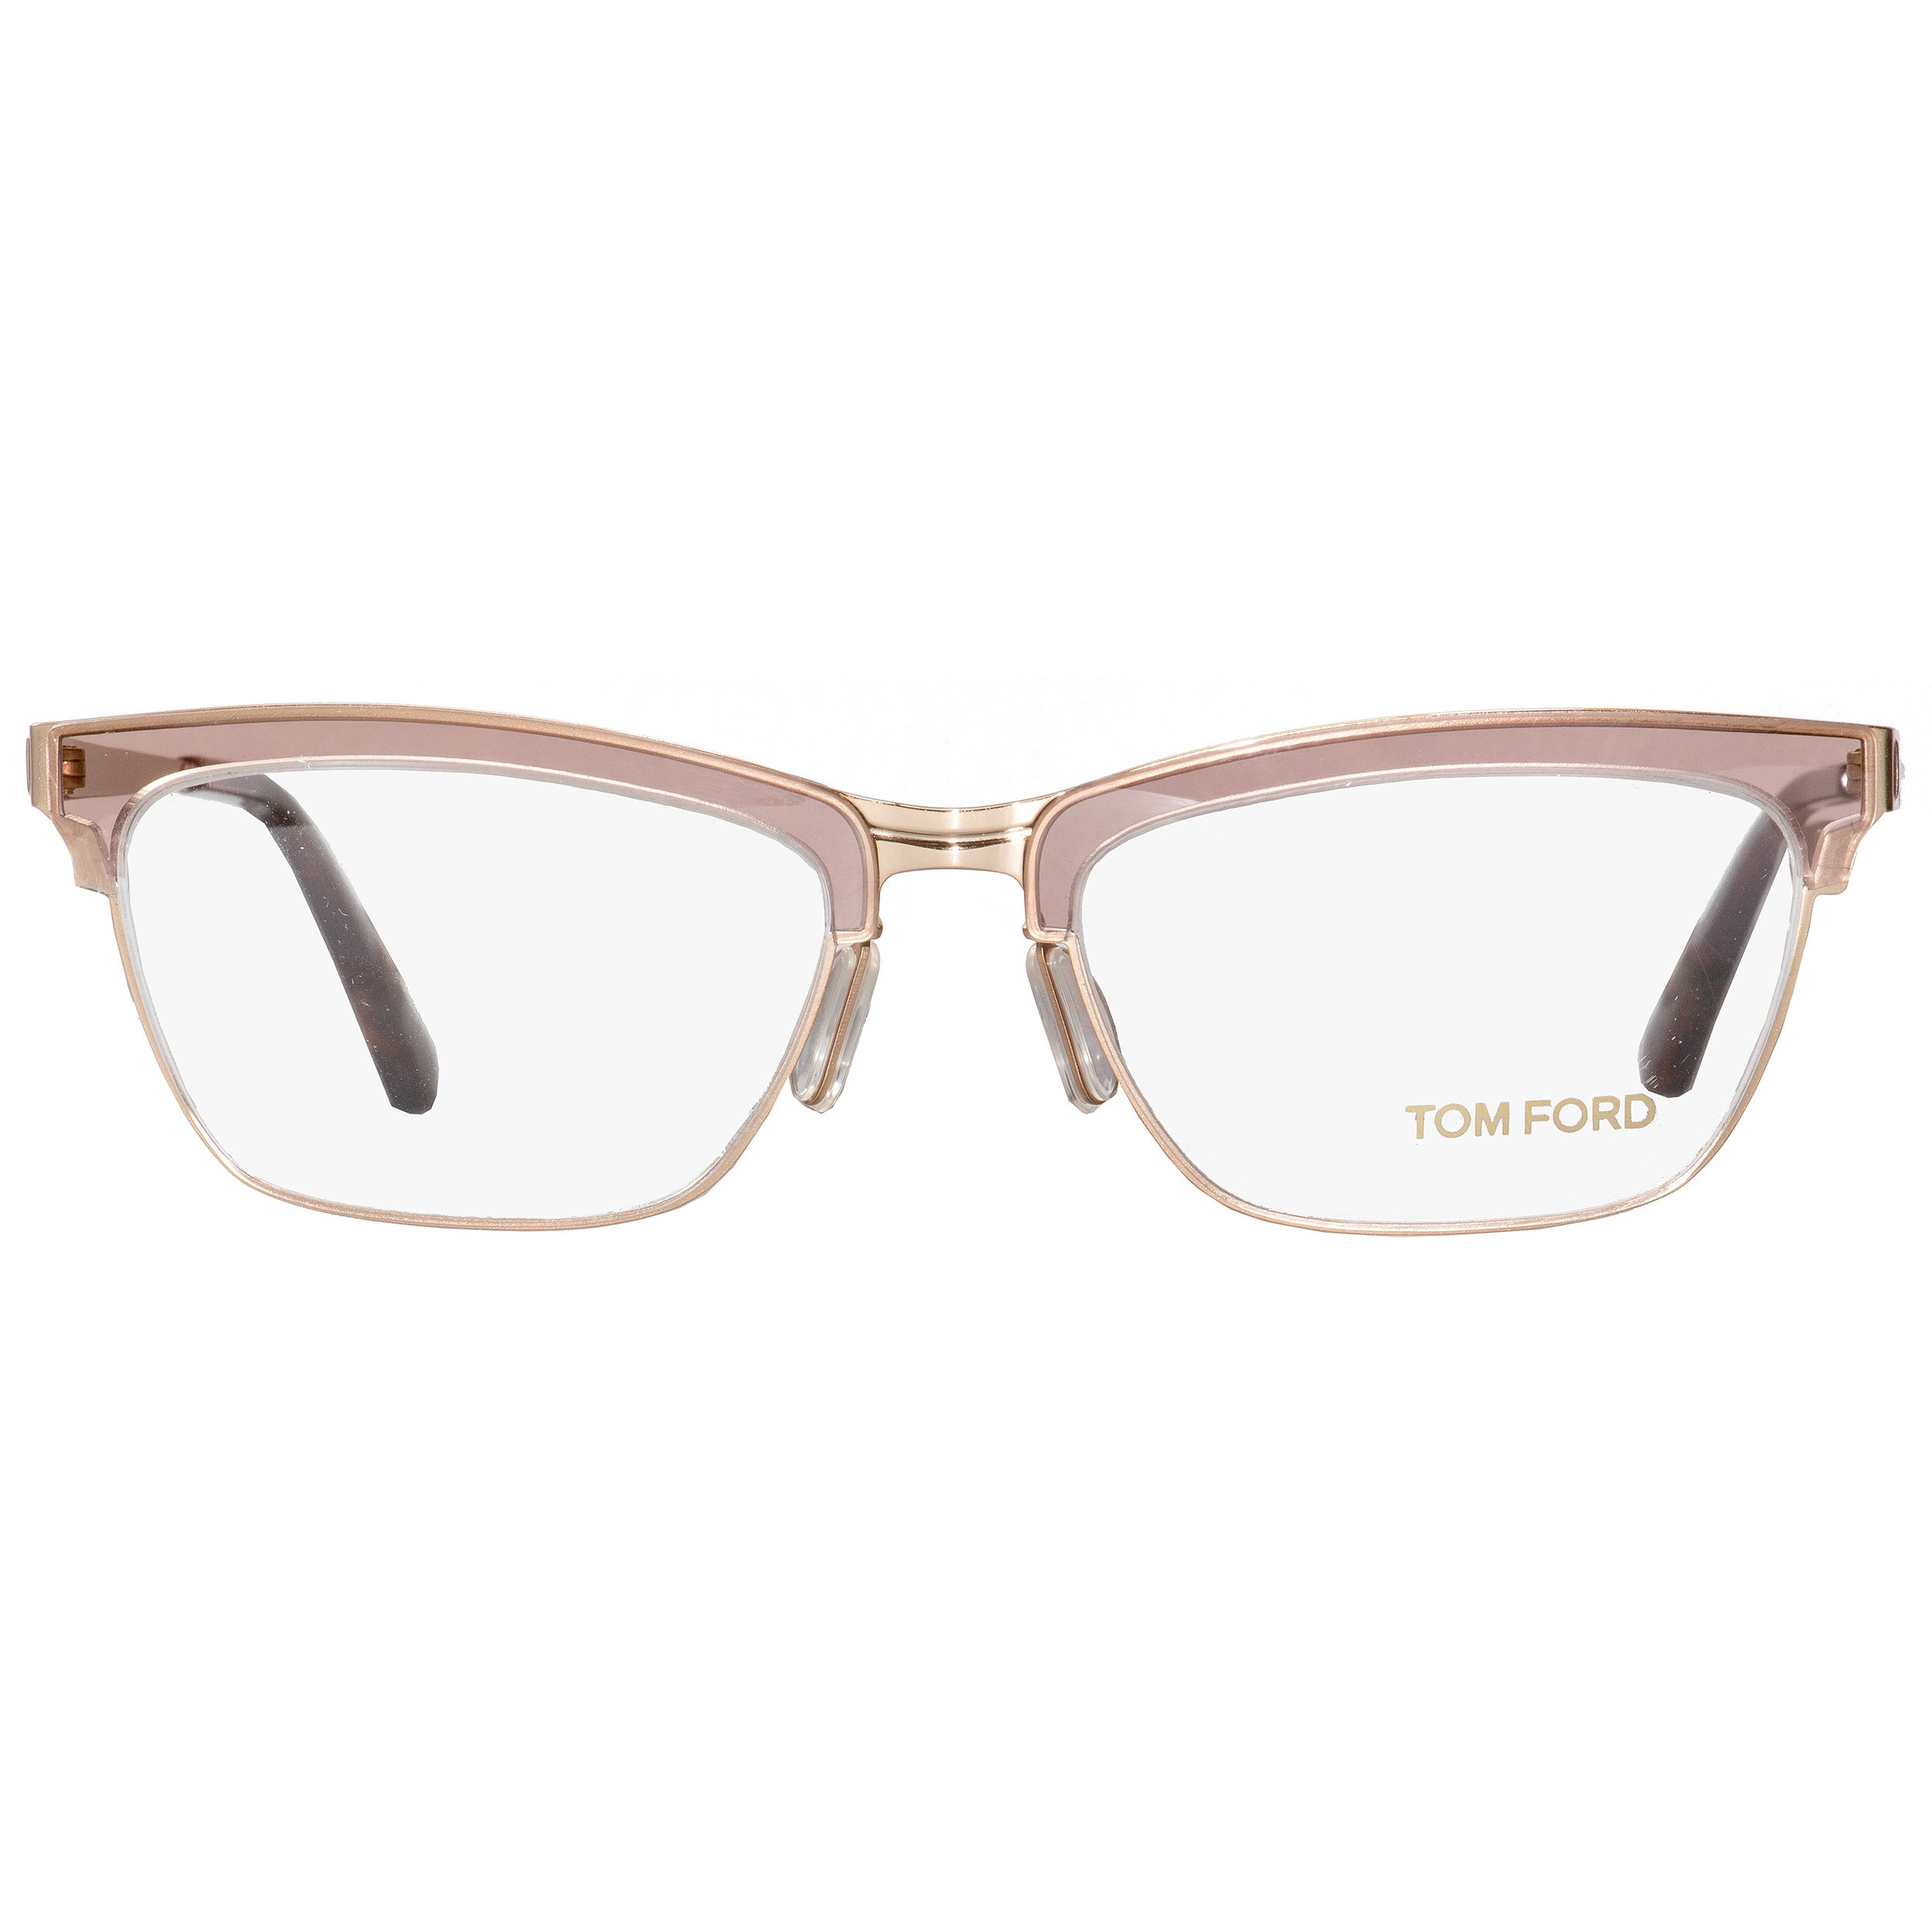 d5b141fb18c Shop Tom Ford TF5392 050 Womens Transparent Brown Gold 54 mm Eyeglasses -  Free Shipping Today - Overstock - 18778820